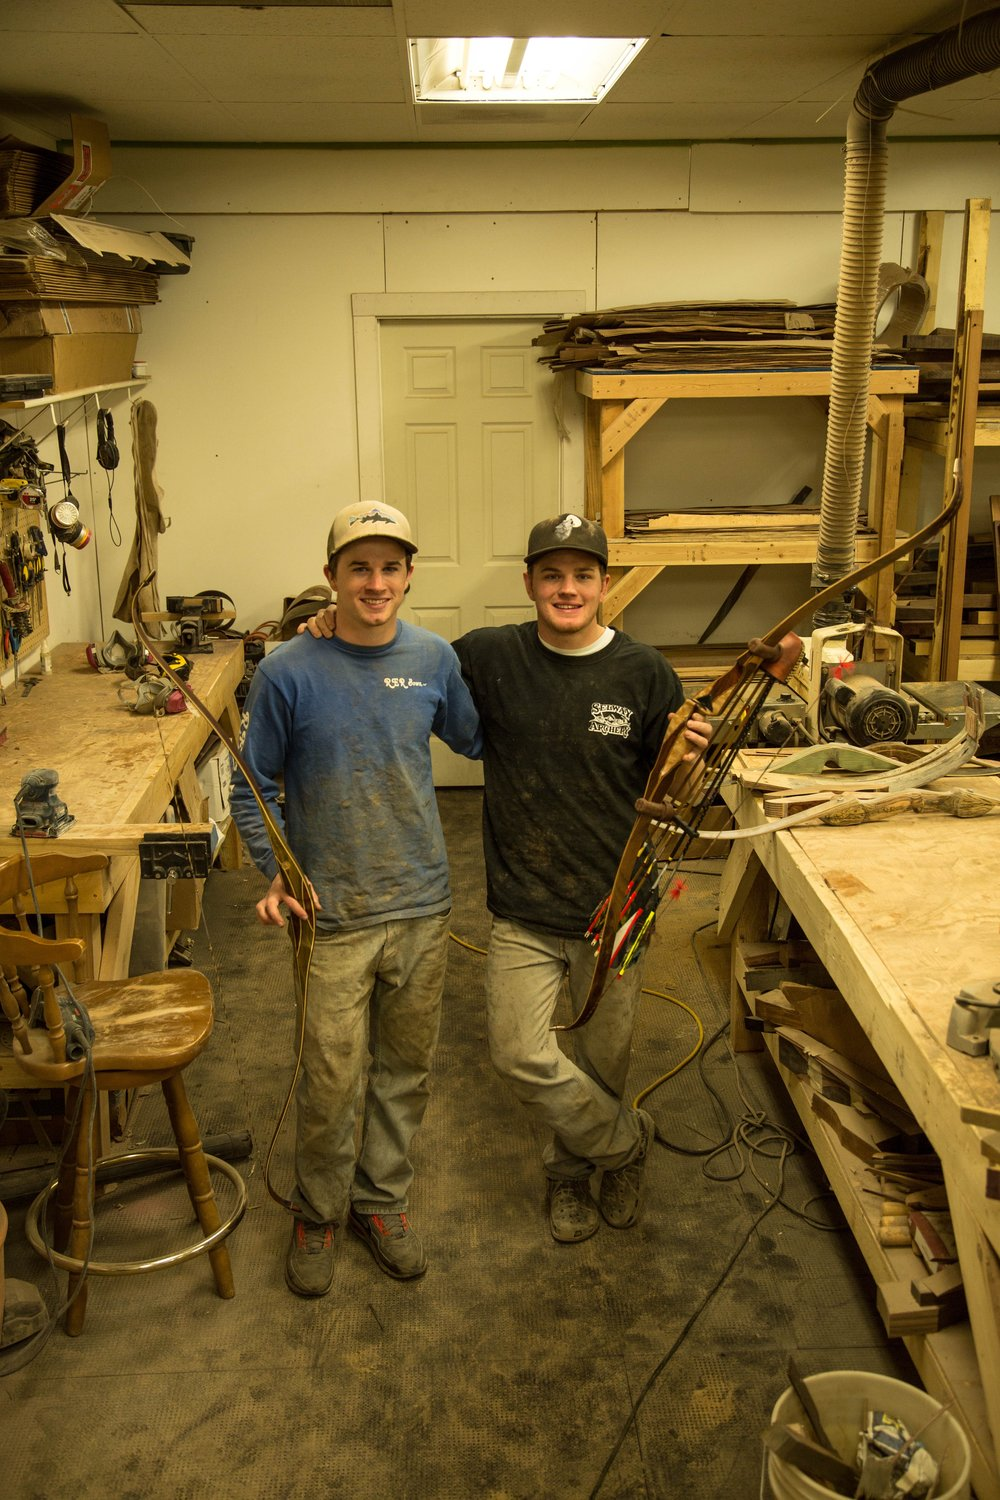 Right at home in their bowyer shop:  Ike (left) and Chester (right) Floyd - brother co-owners of RER Bows in Bozeman, MT